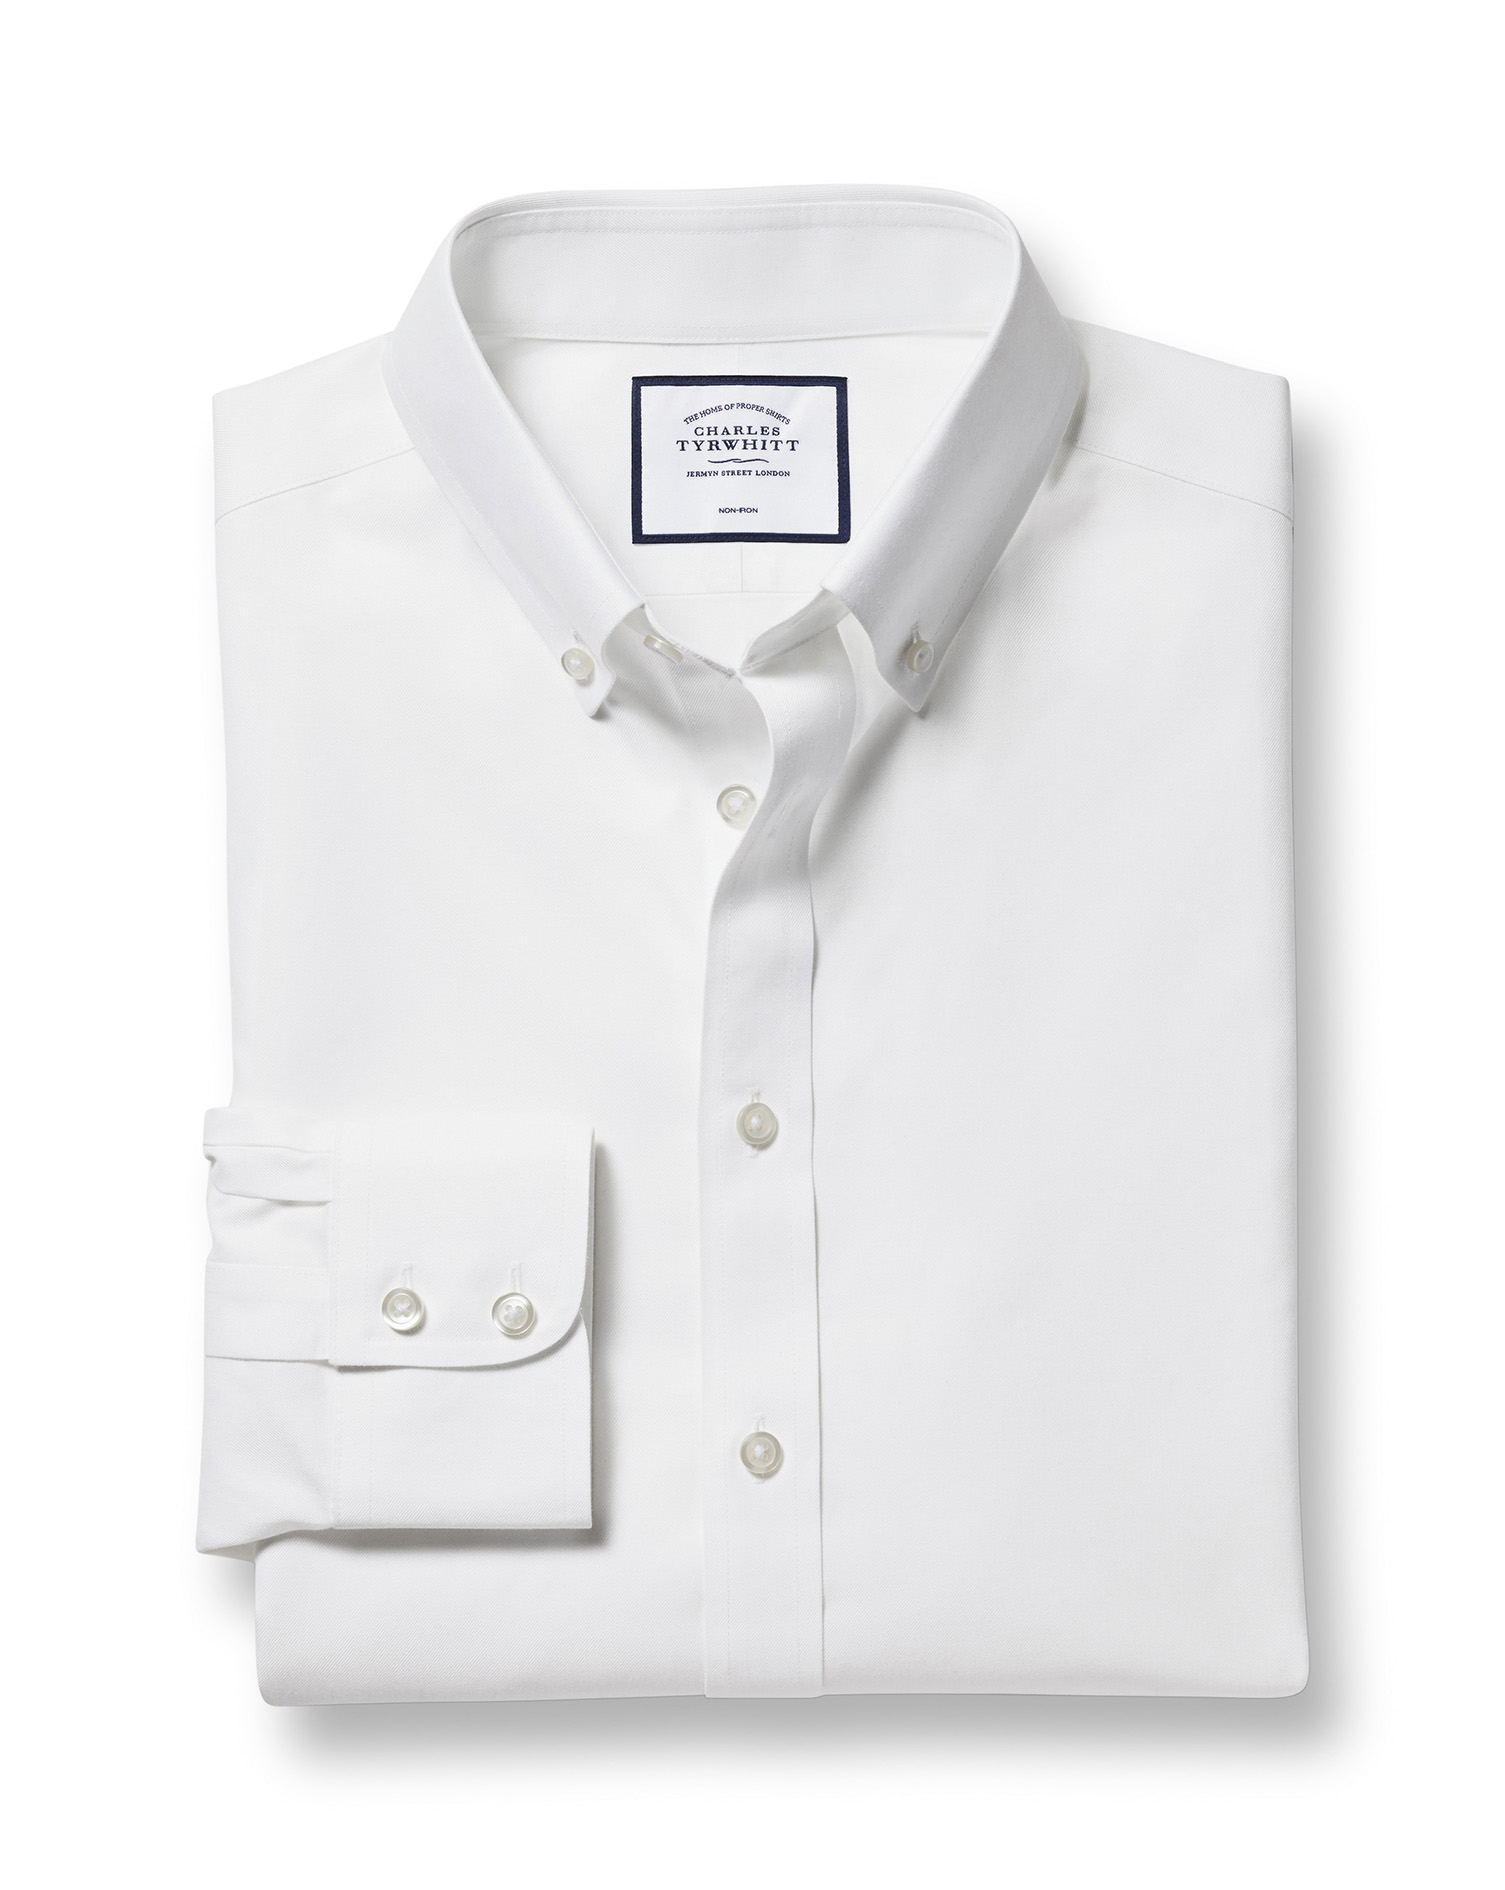 Slim Fit Button-Down Non-Iron Twill White Cotton Formal Shirt Single Cuff Size 15/32 by Charles Tyrw